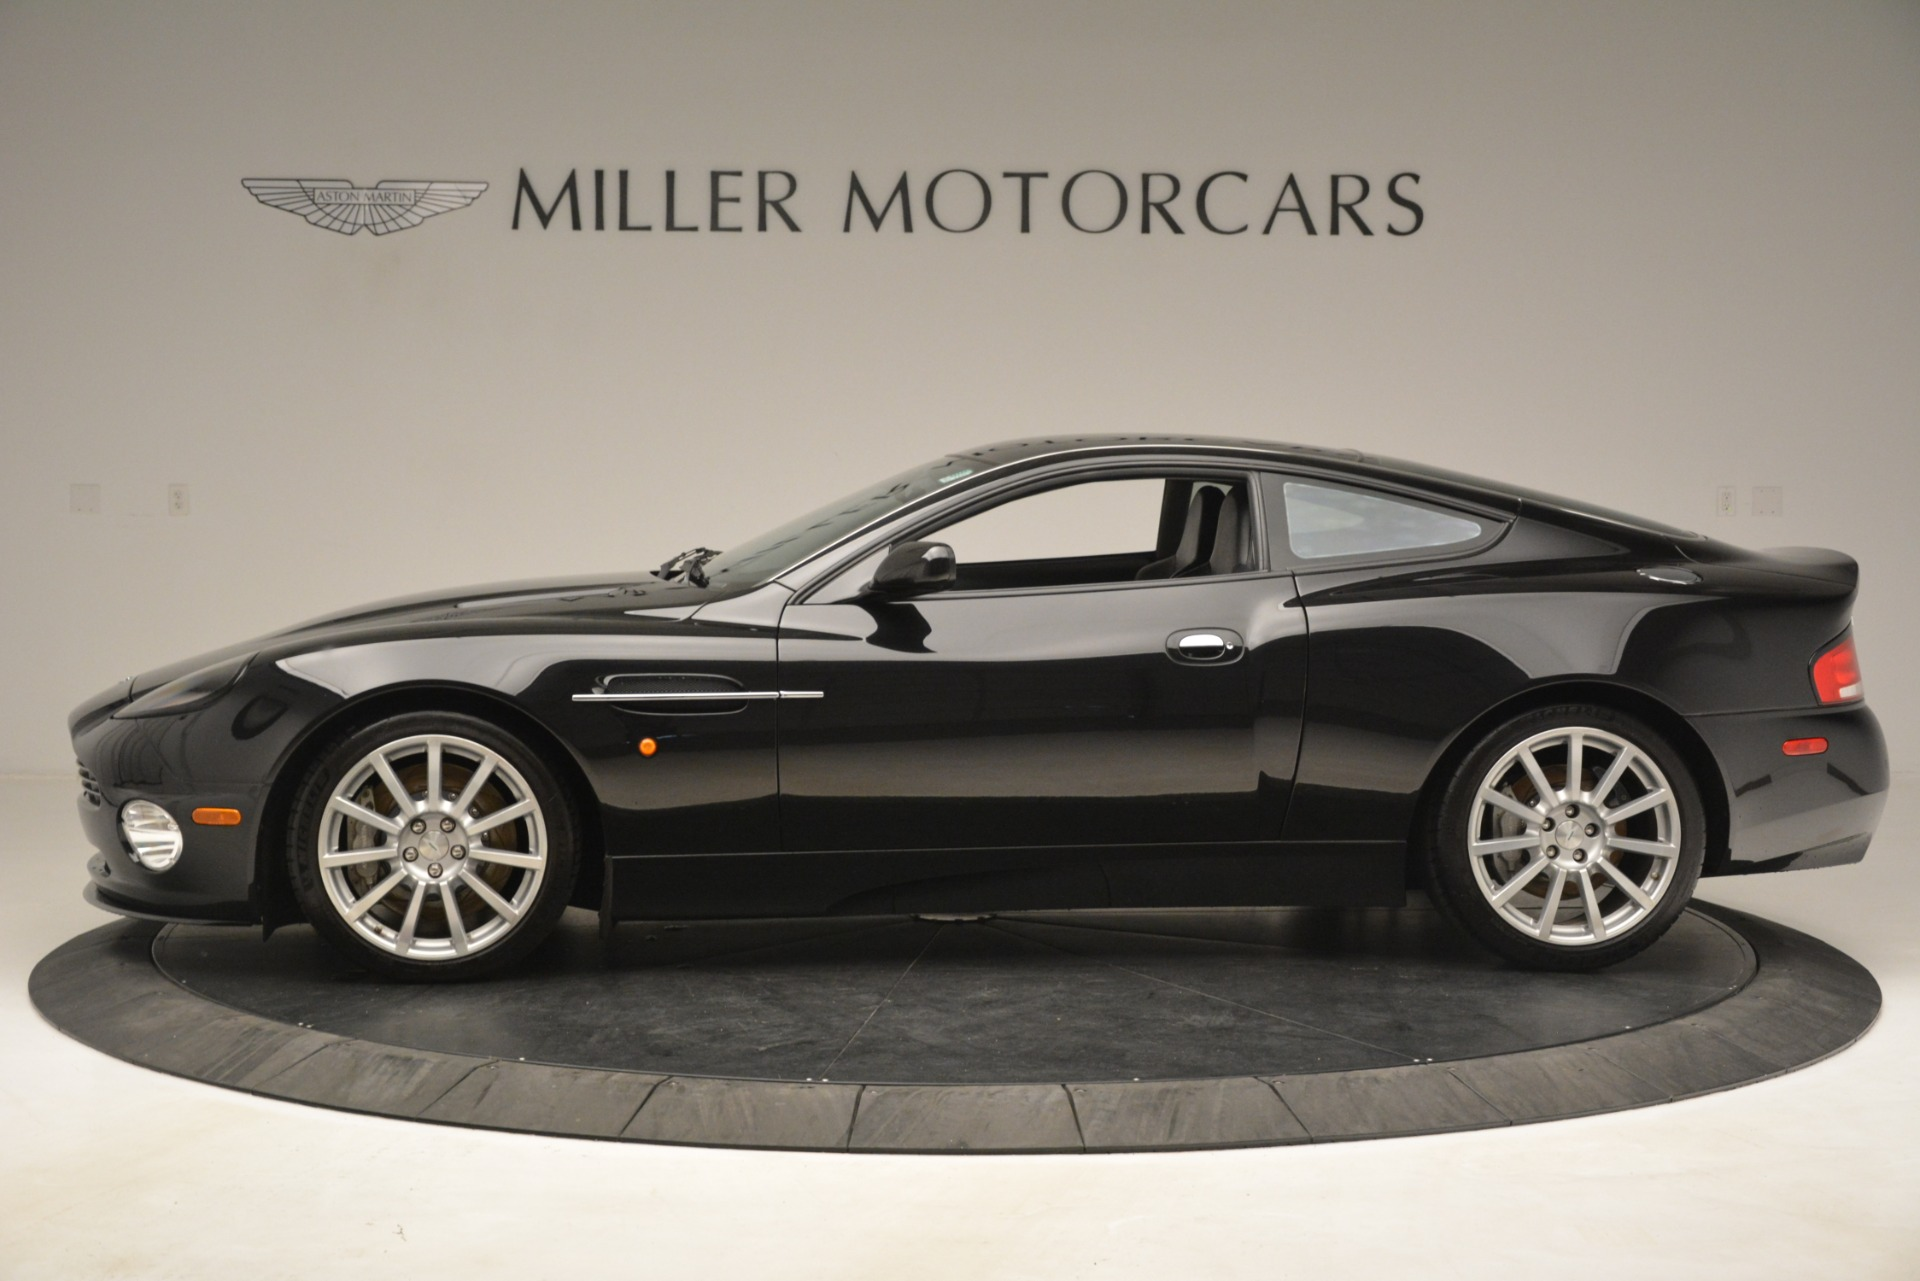 Used 2005 Aston Martin V12 Vanquish S For Sale In Westport, CT 3218_p3